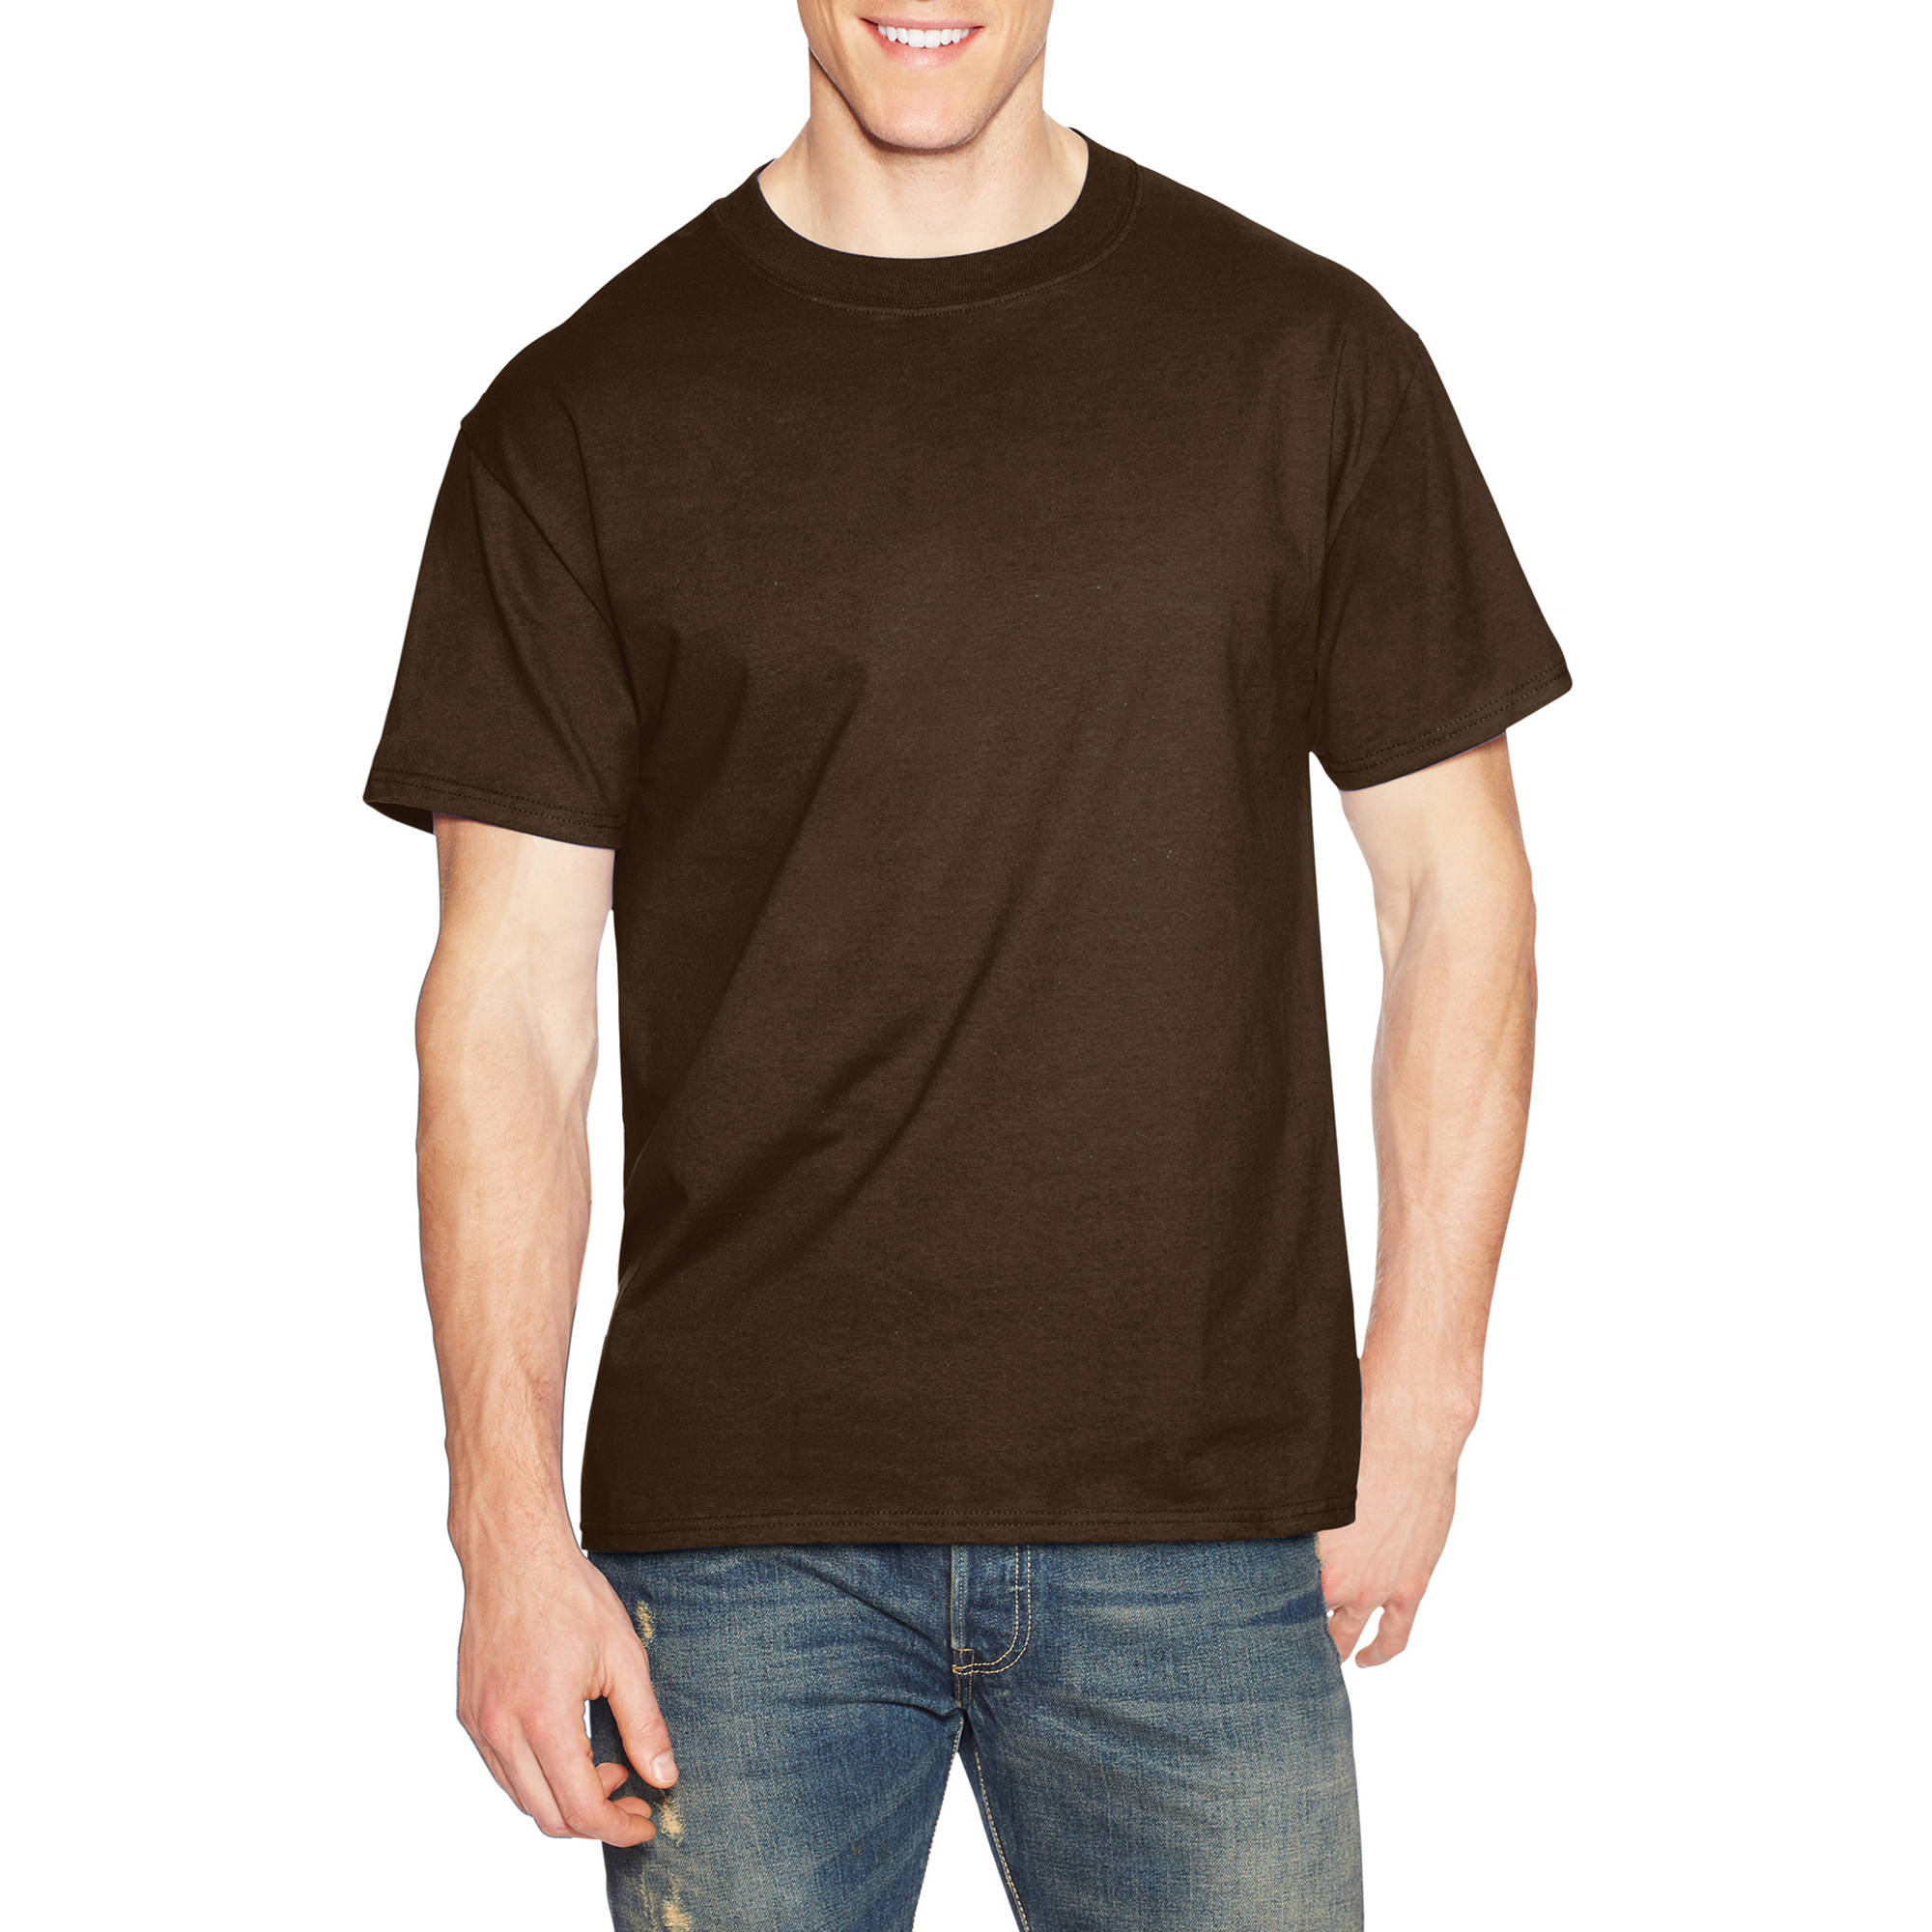 Hanes Big Men's Beefy Short Sleeve T-shirt